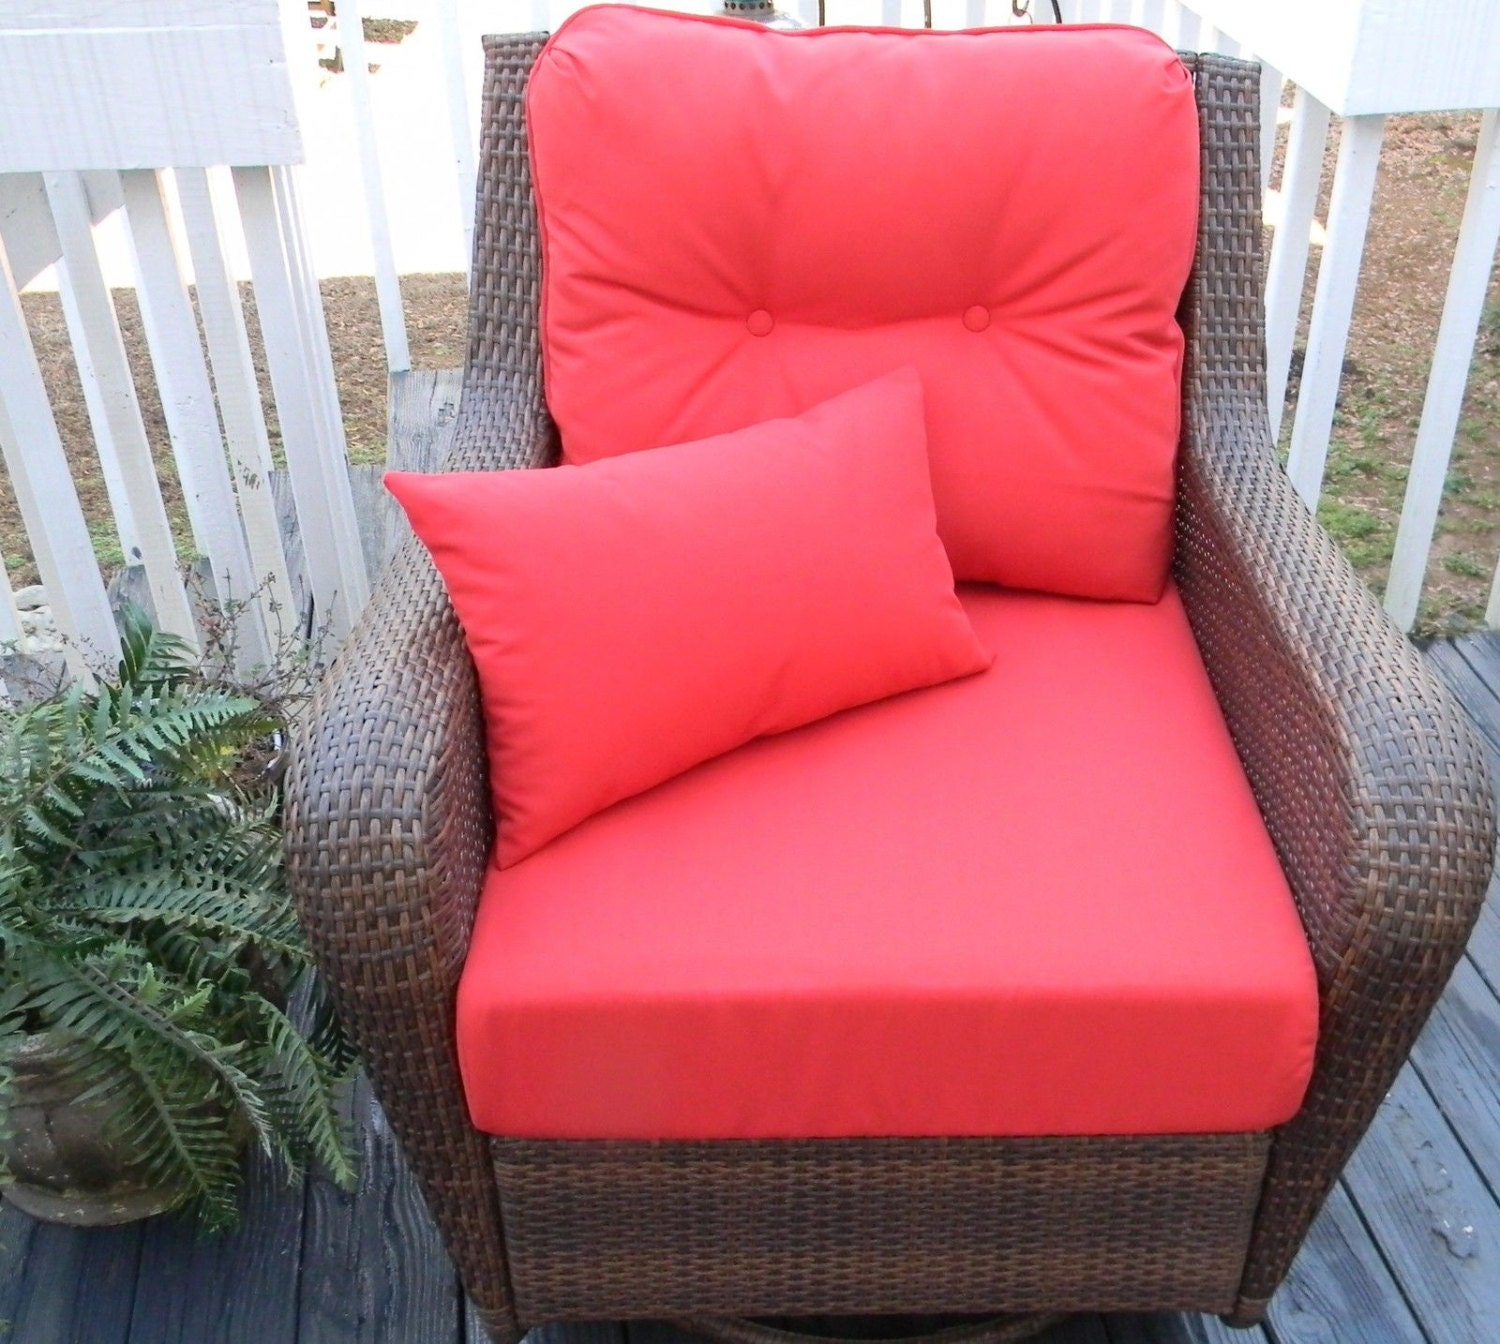 Luxury Patio Cushion Replacement Covers